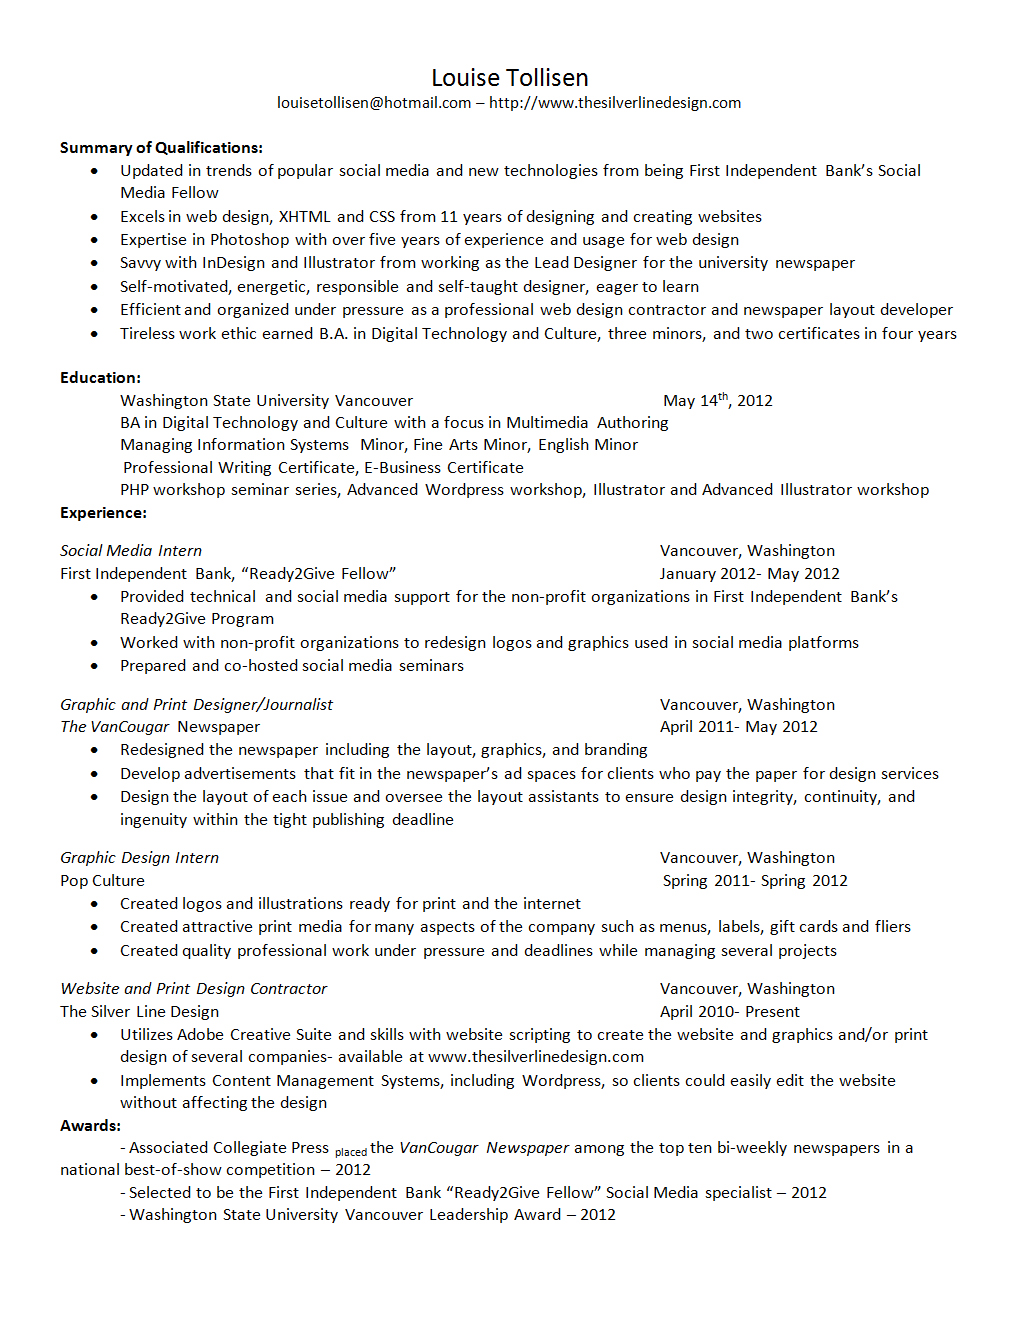 Investment Banking Intern Cover Letter Example   investment     Home Design Resume CV Cover Leter Starting Successful Career from a Great Bank Manager Resume  Image  NameStarting Successful Career from a